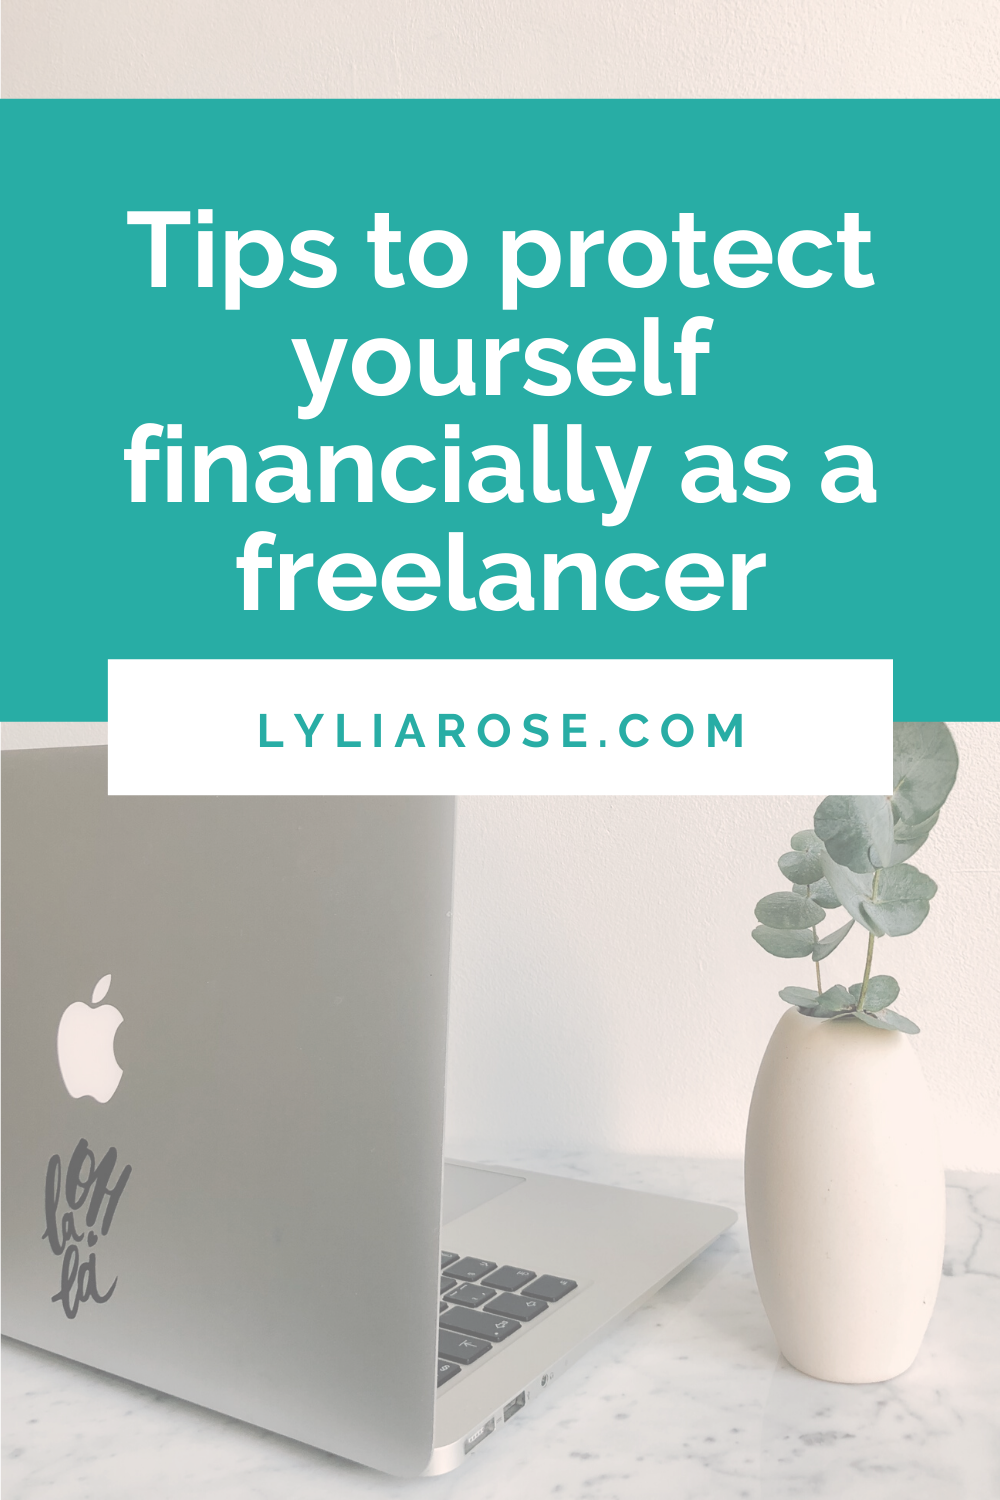 Tips to protect yourself financially as a freelancer (2)